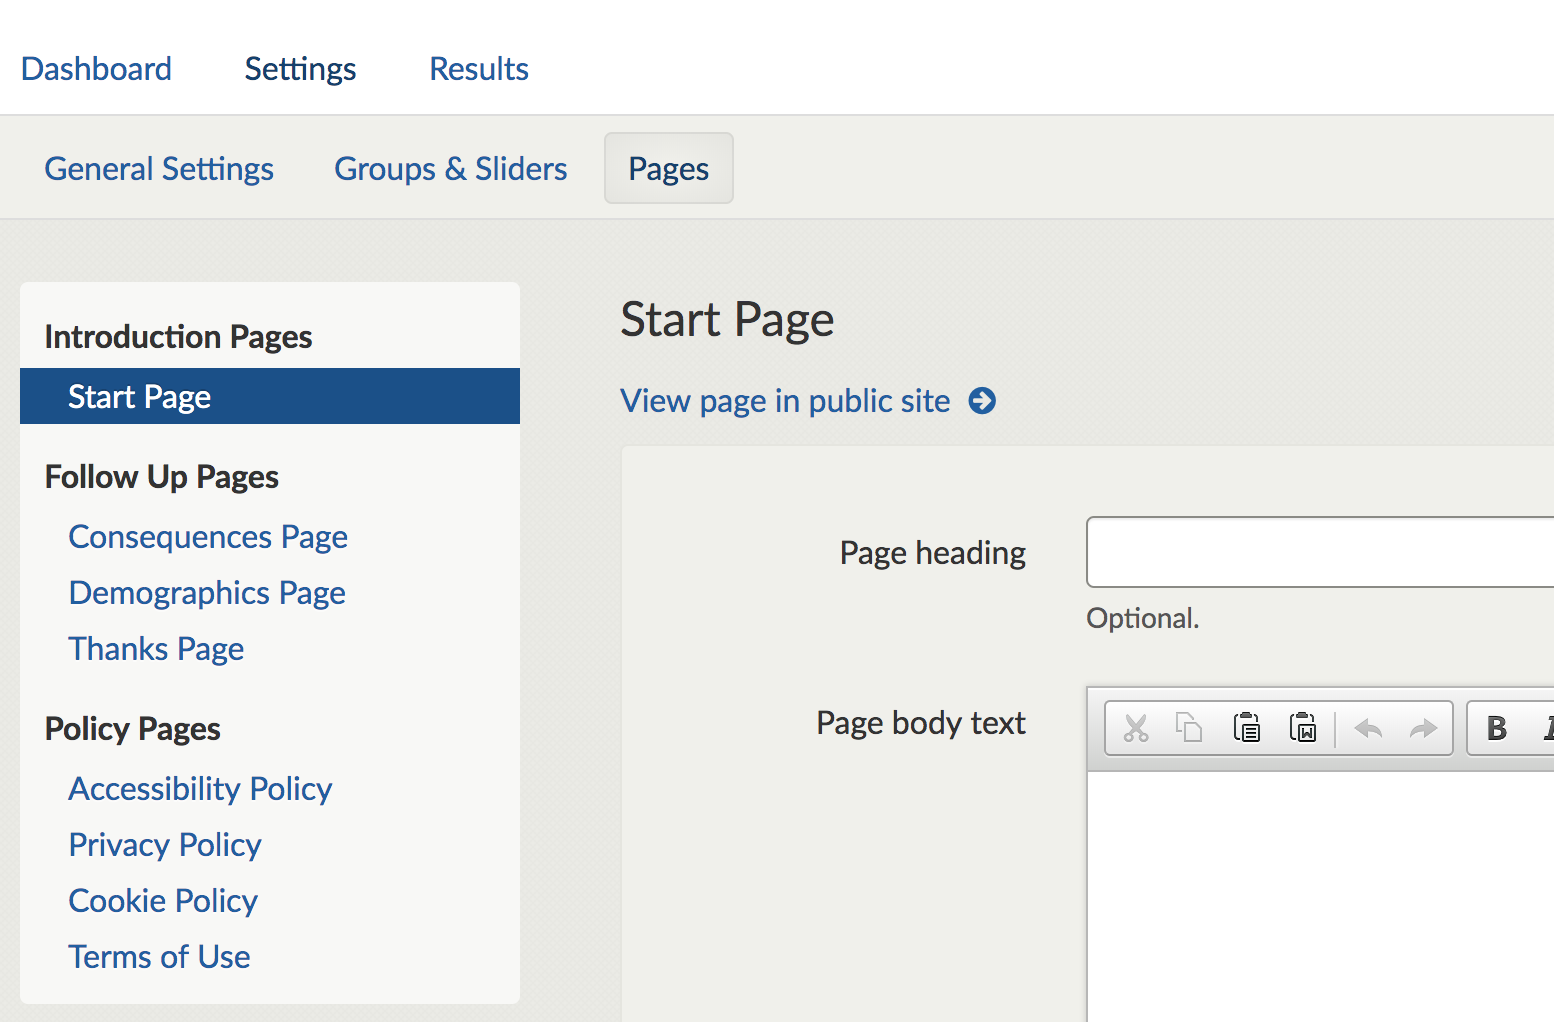 Screenshot of the editable pages screen showing the policy pages at the bottom of the left hand side menu